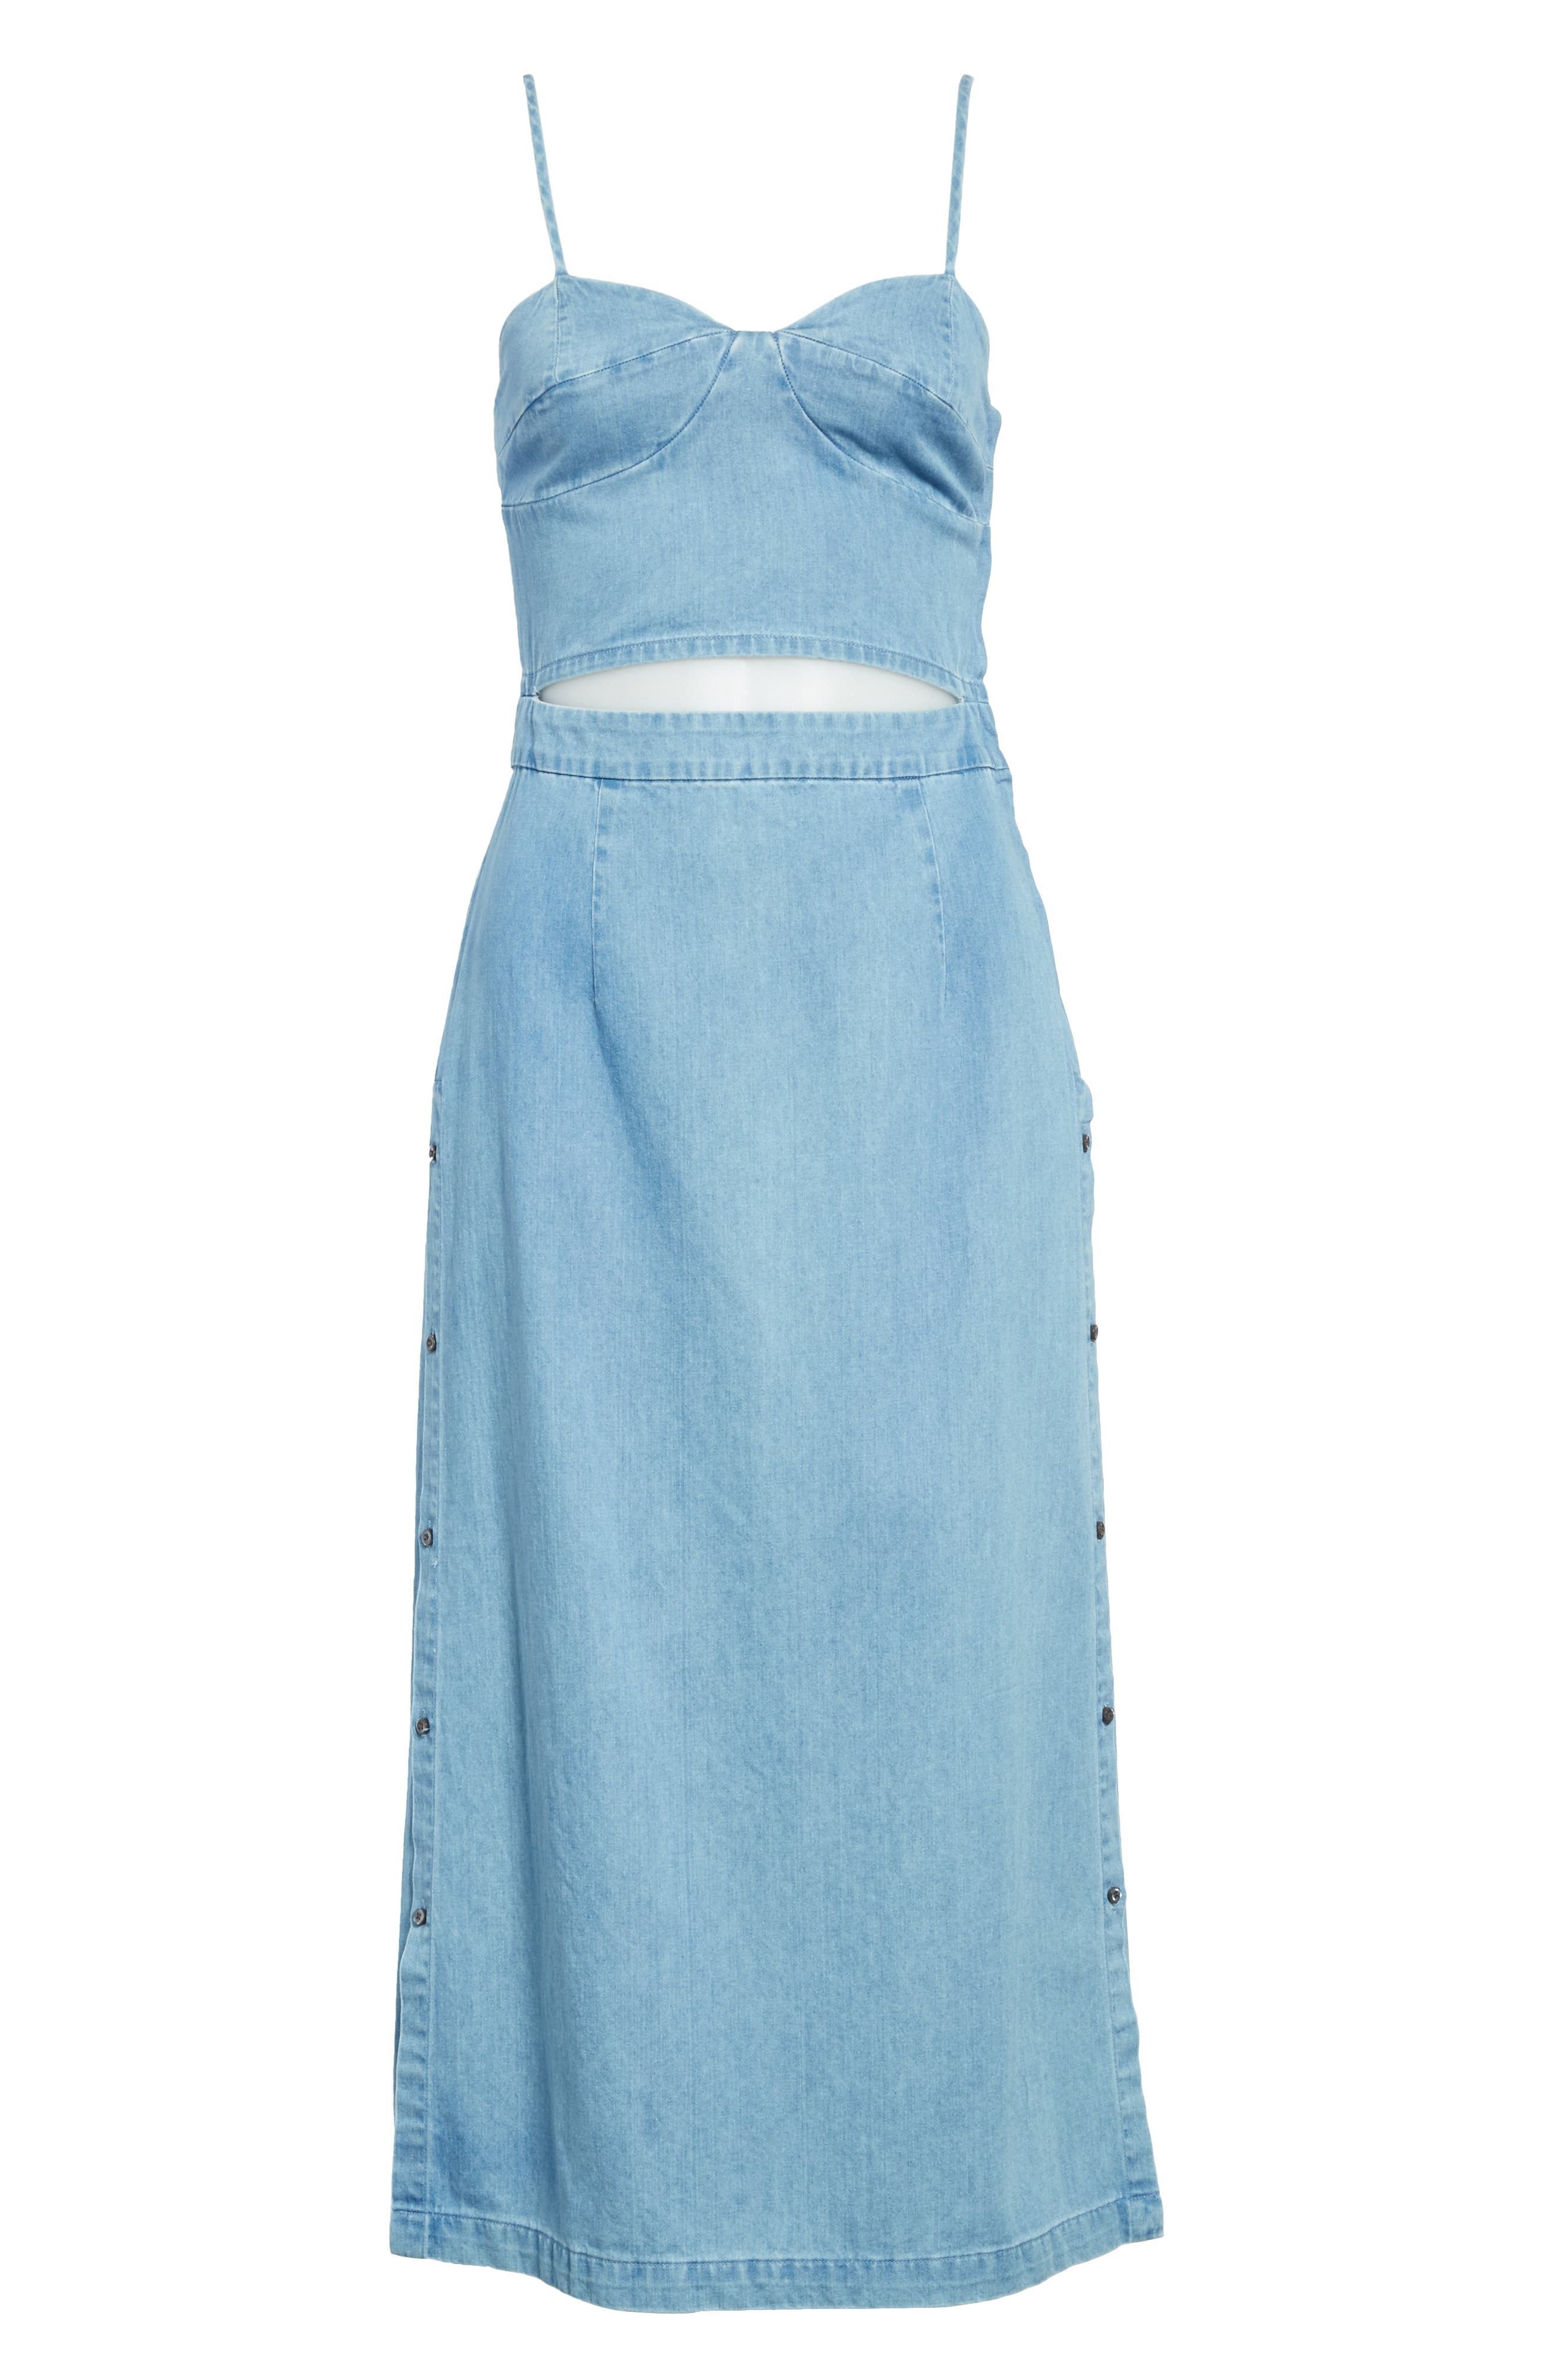 Peekaboo Chambray Midi Dress,                             Alternate thumbnail 6, color,                             Augustine